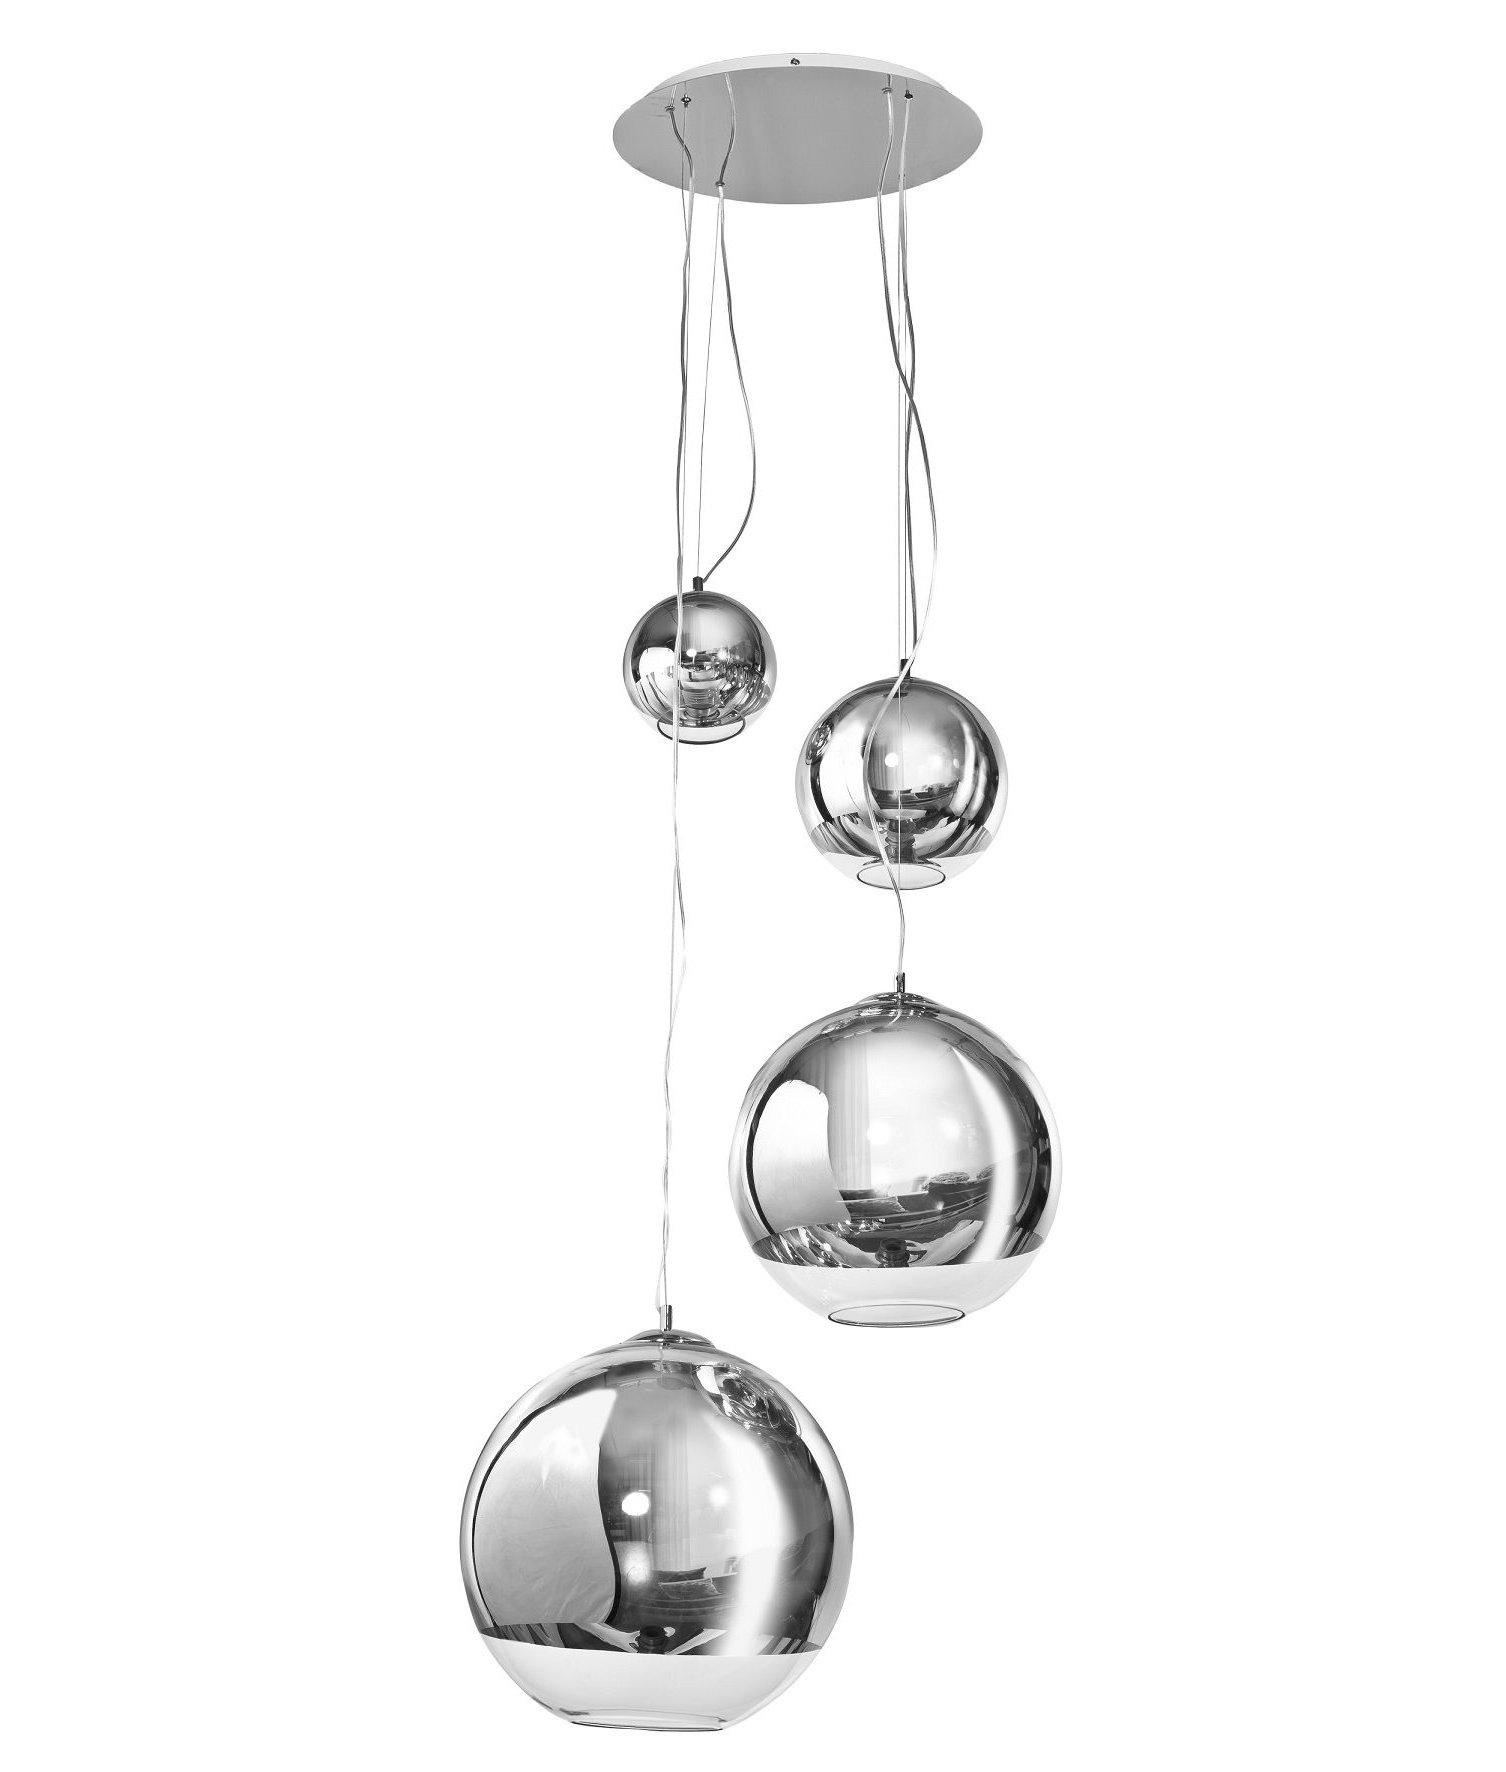 Silver Ball Hanging Pendant 4 Light